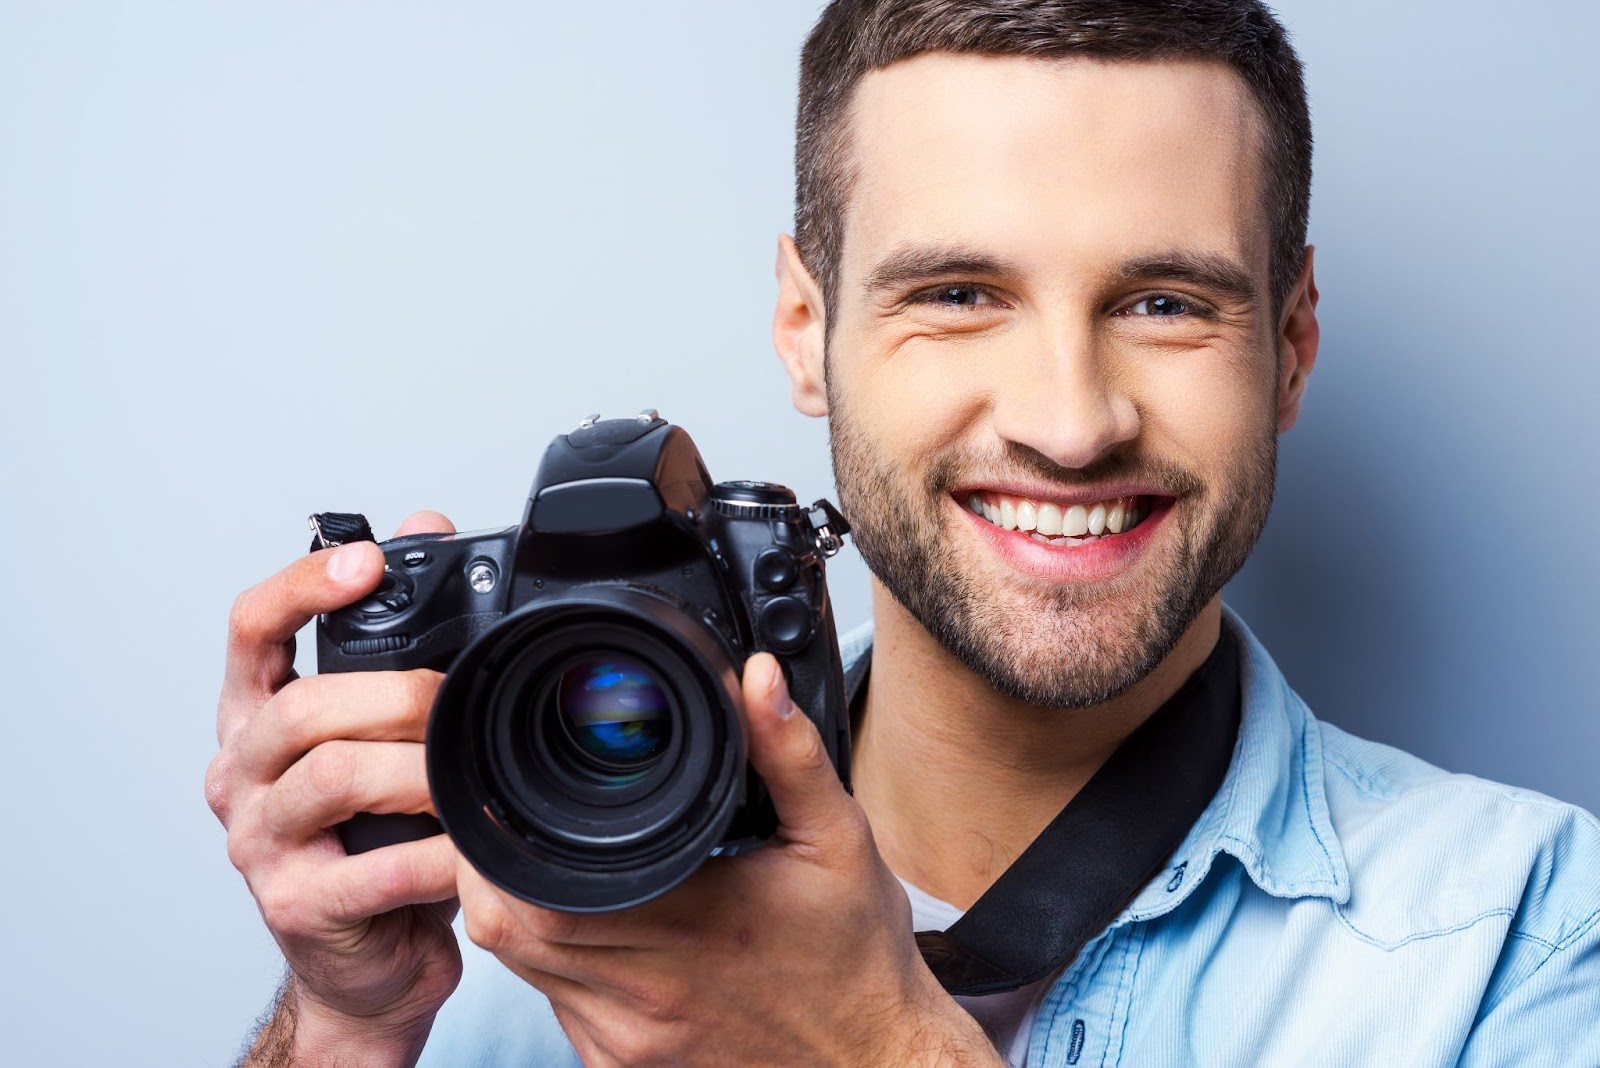 Smiling man with camera